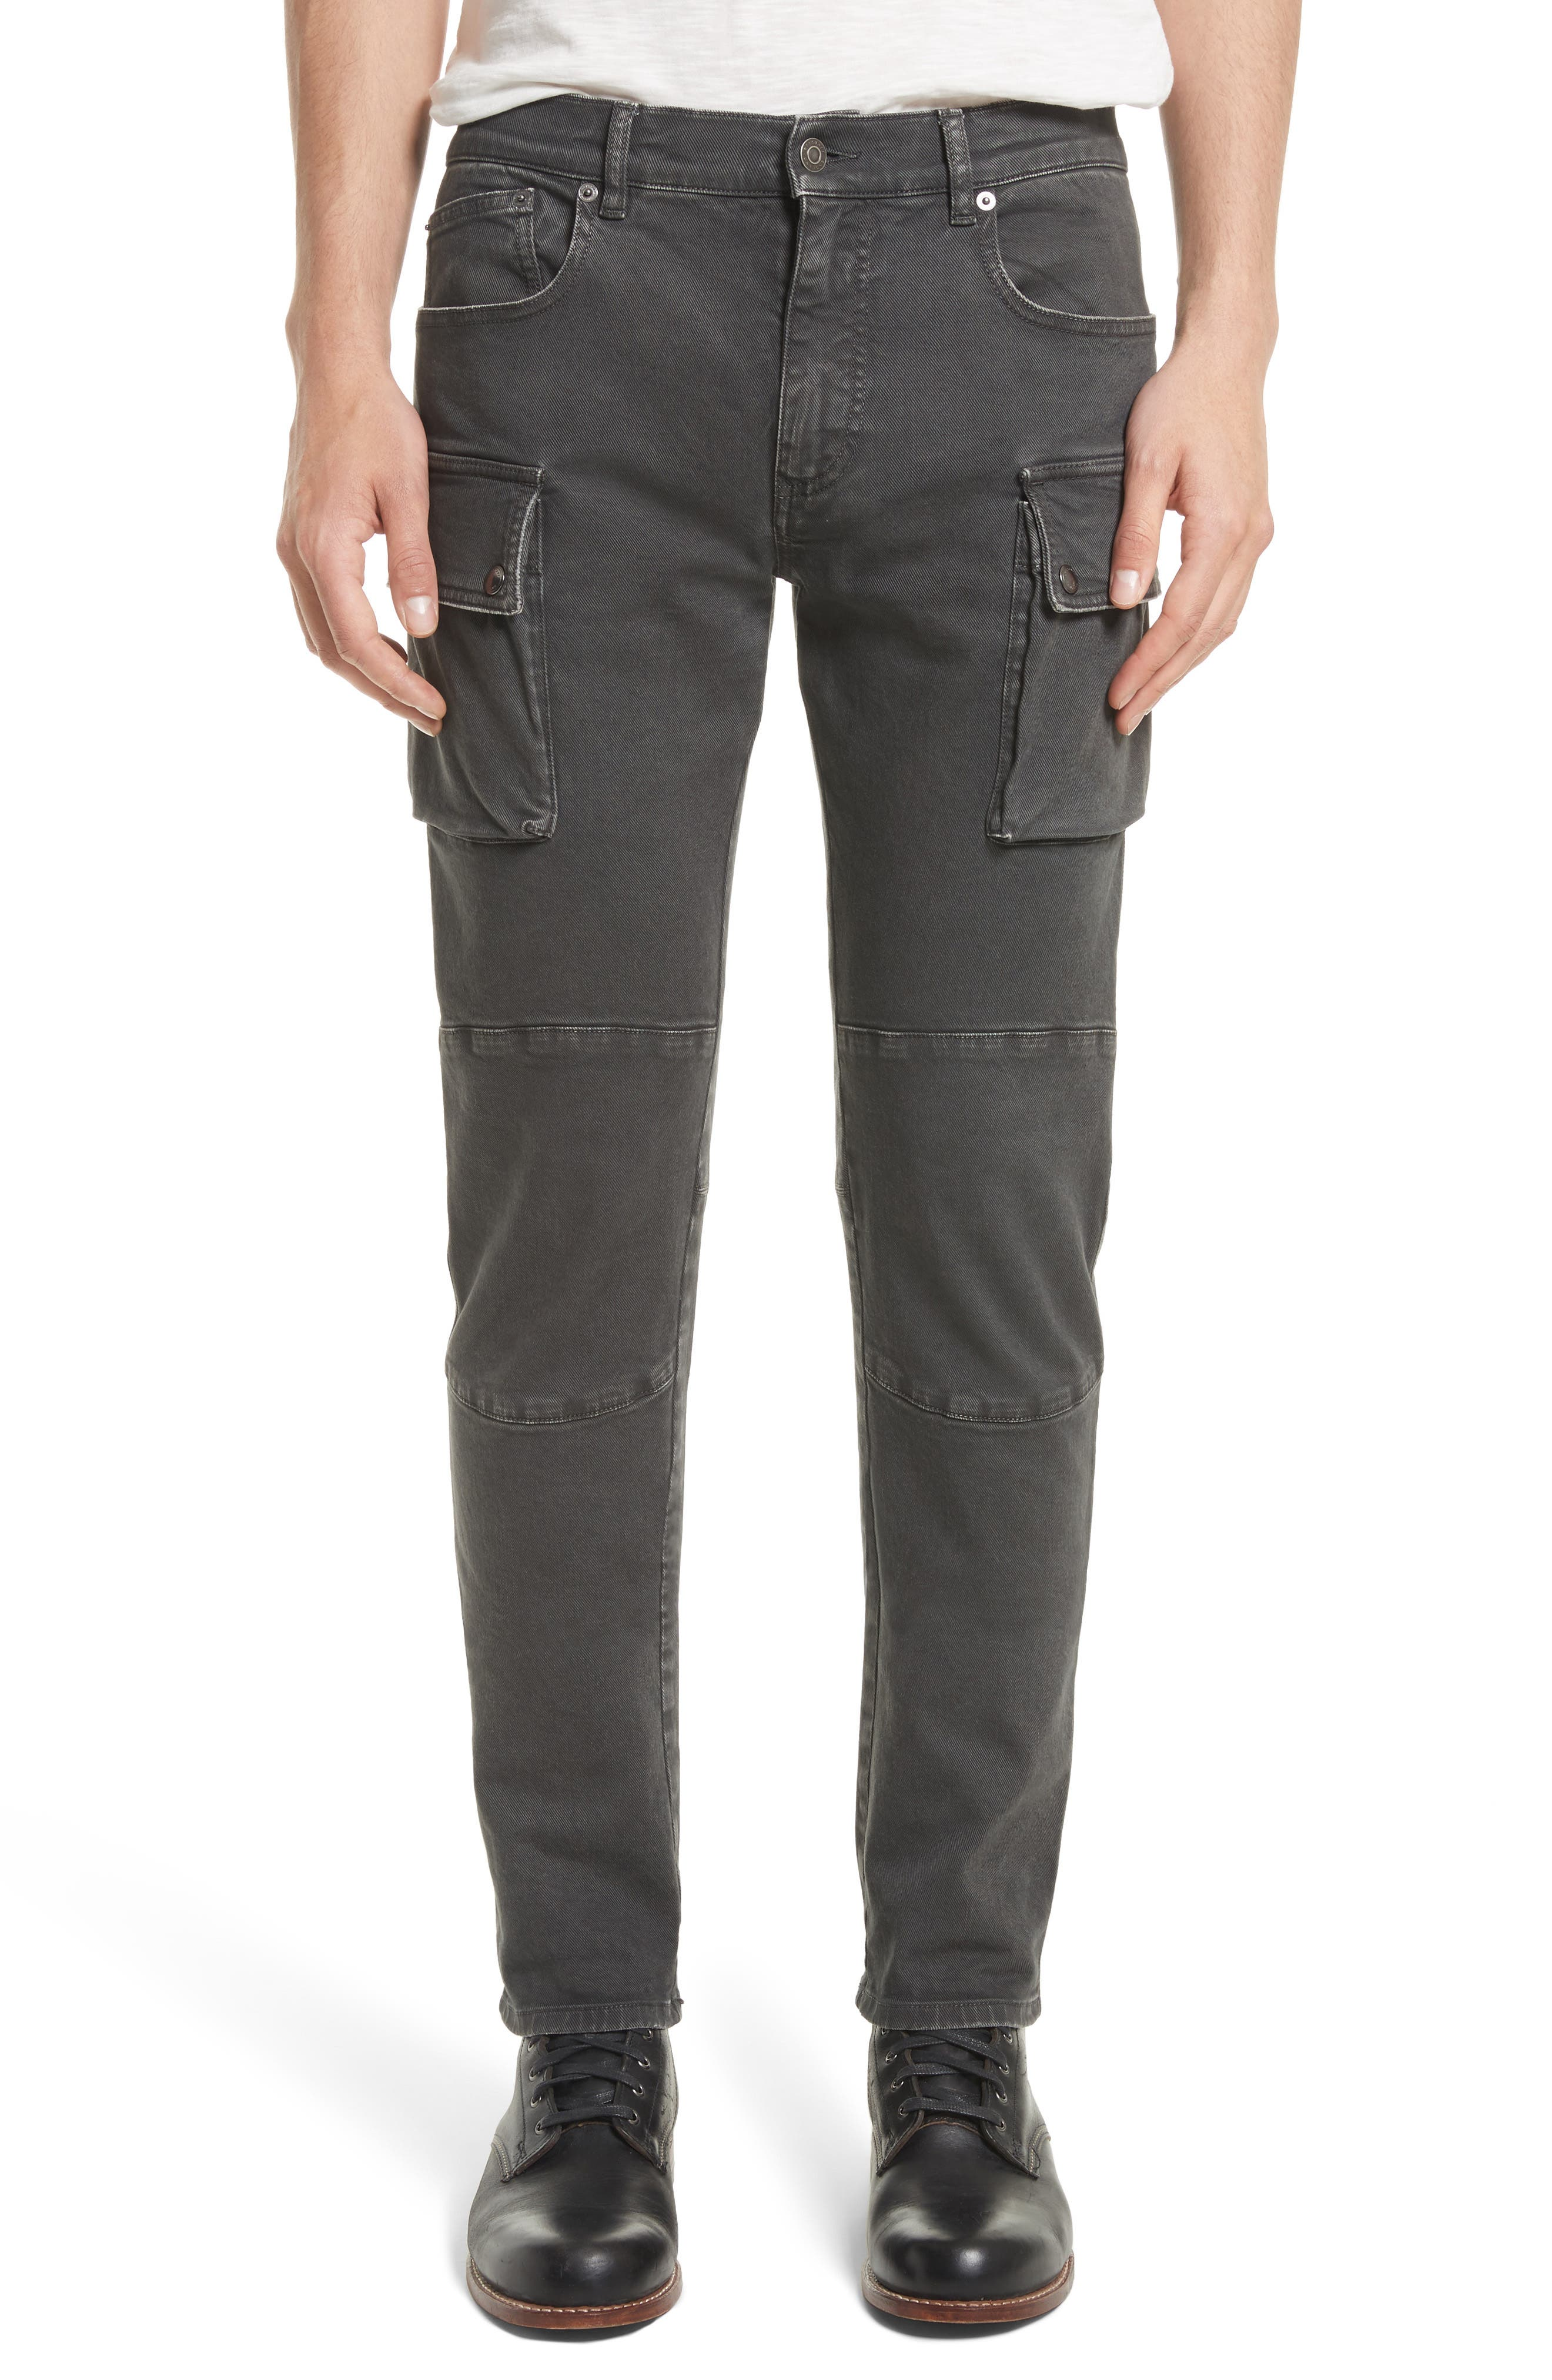 Westward Tapered Fit Cargo Jeans,                         Main,                         color, Black